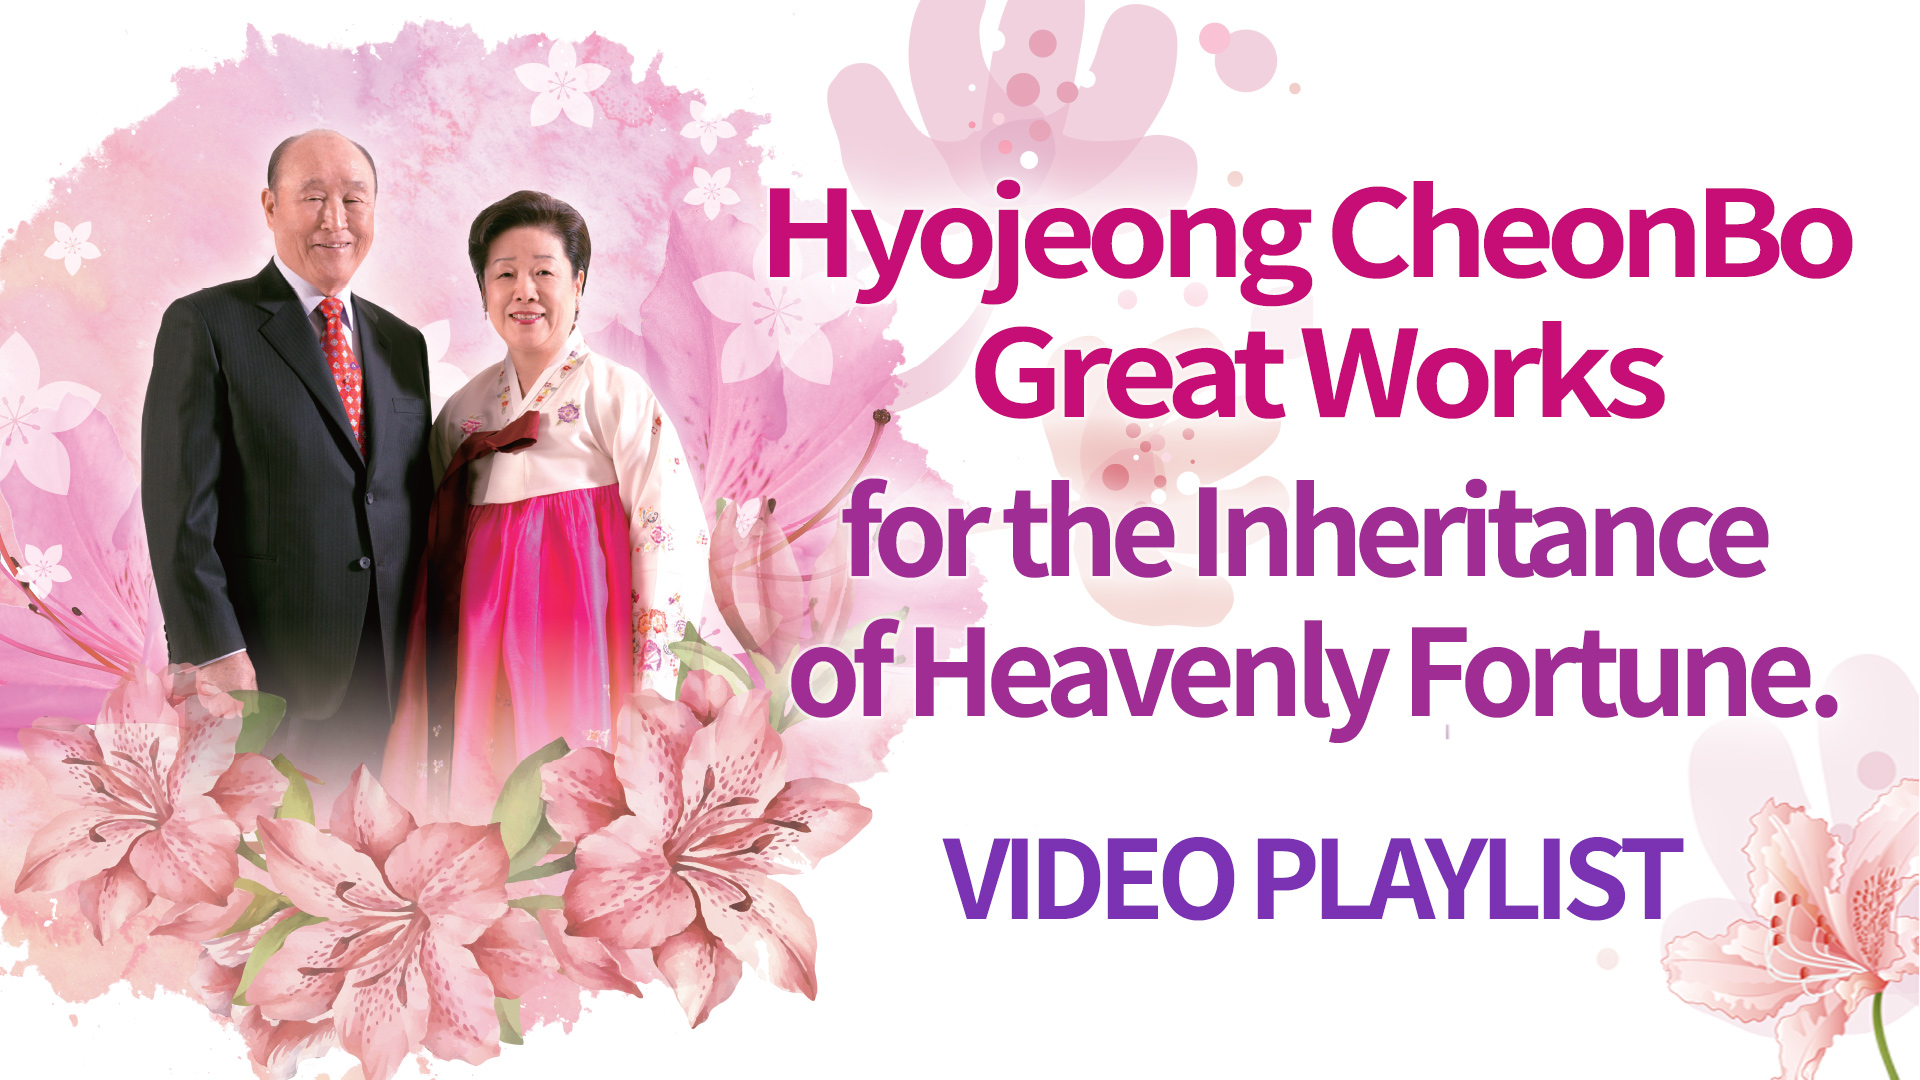 Hyojeong CheonBo Great Works for the Inheritance of Heavenly Fortune